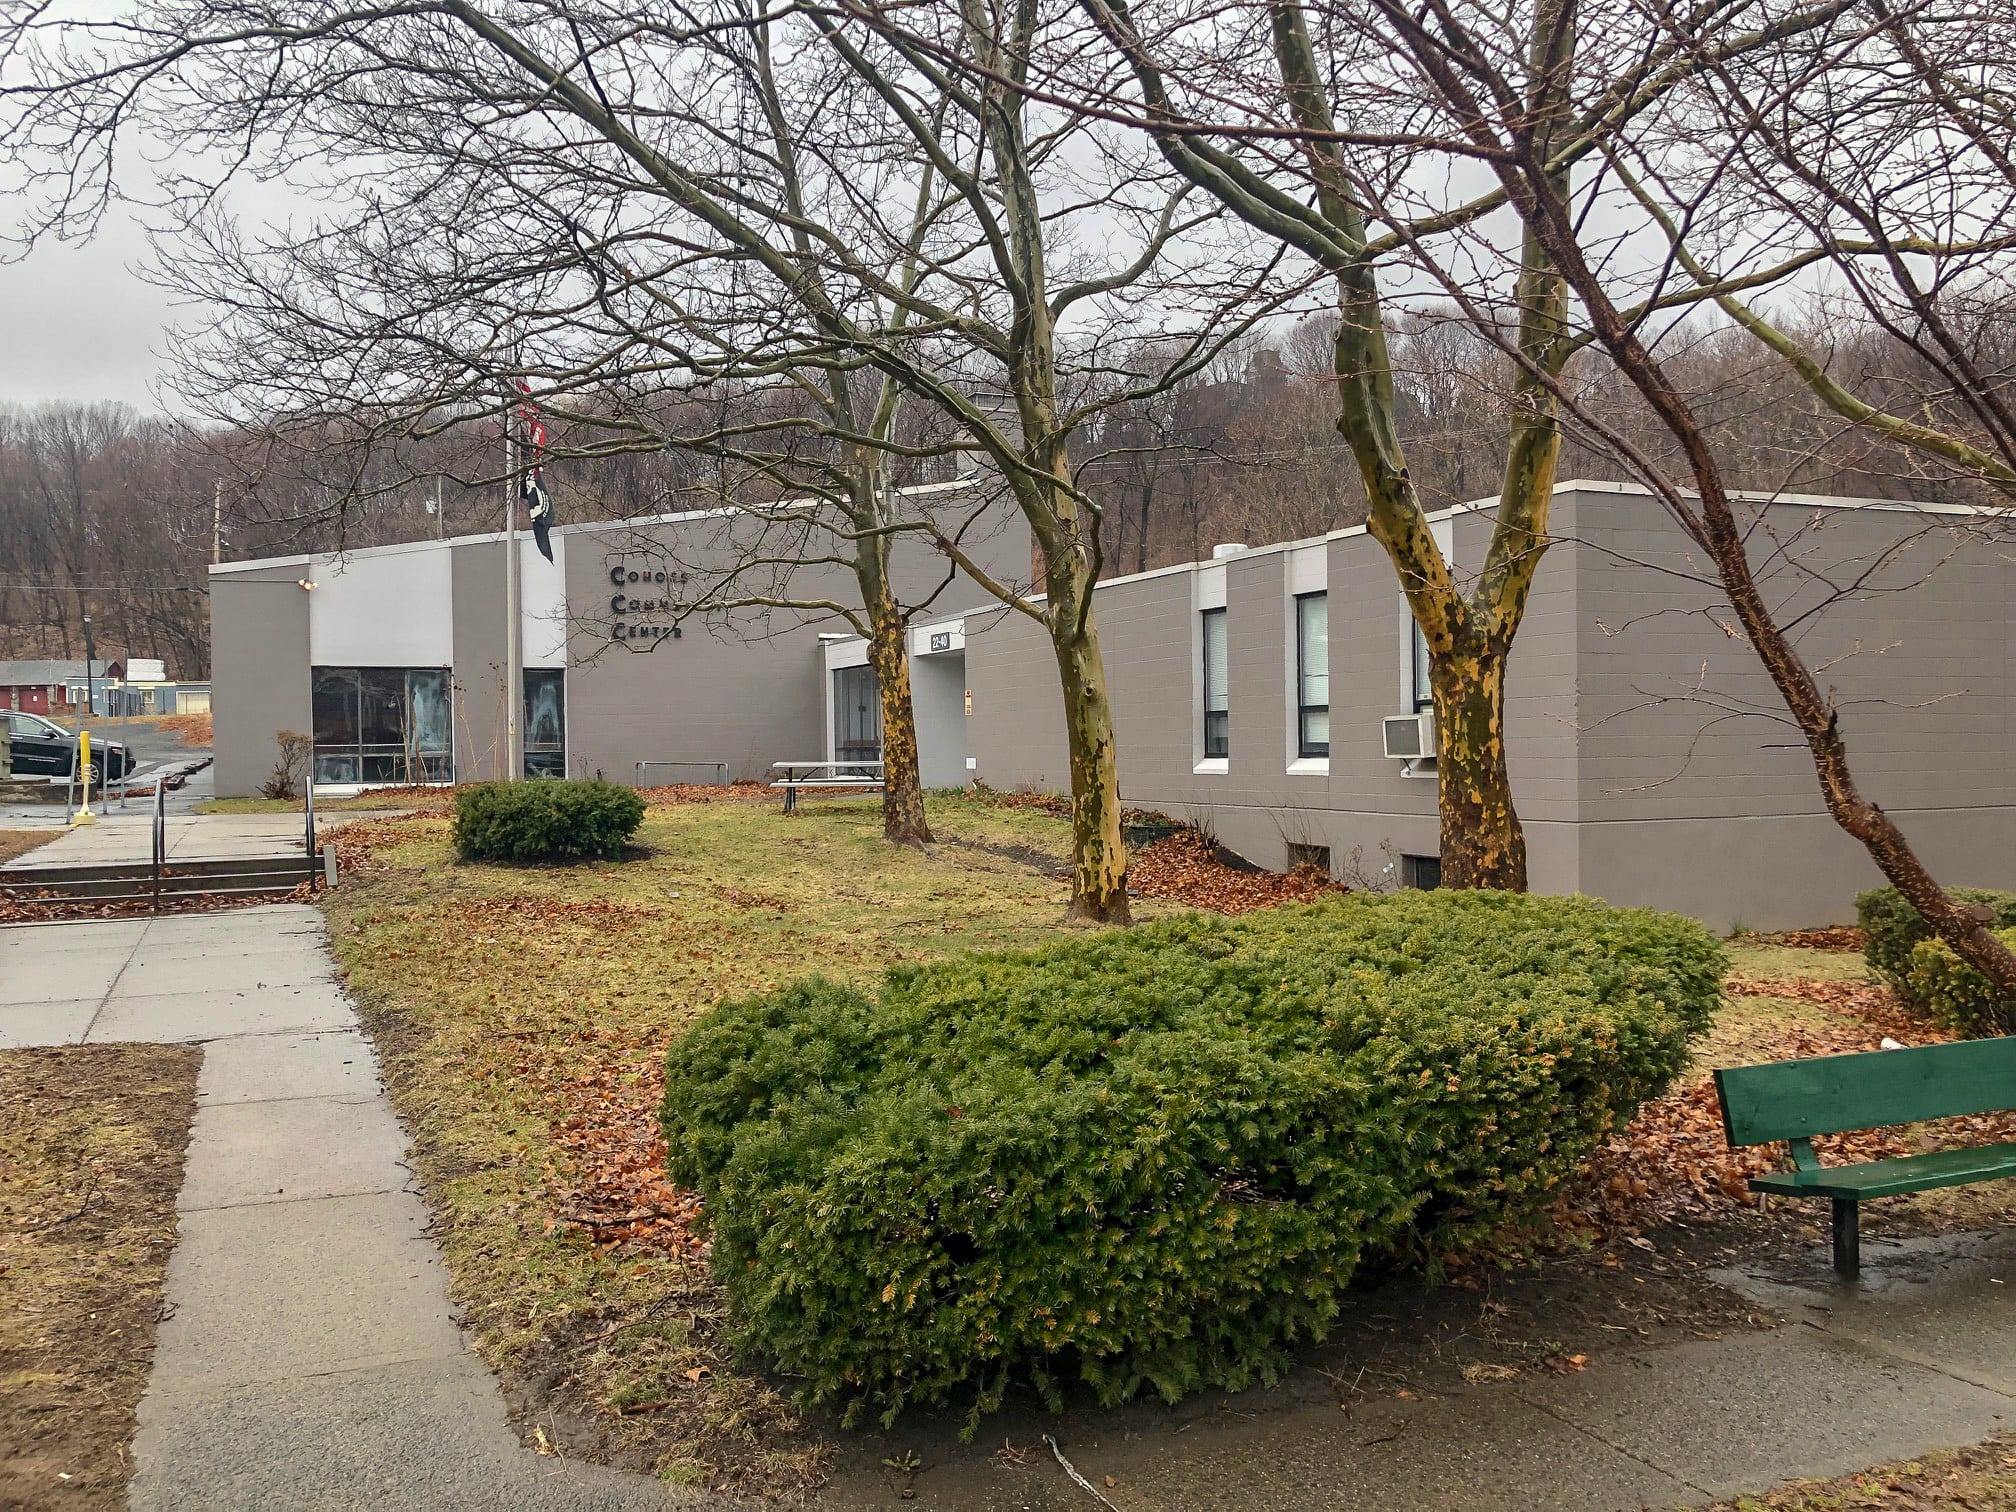 Community Center For Sale at 0 Cayuga Street, Cohoes NY 12047